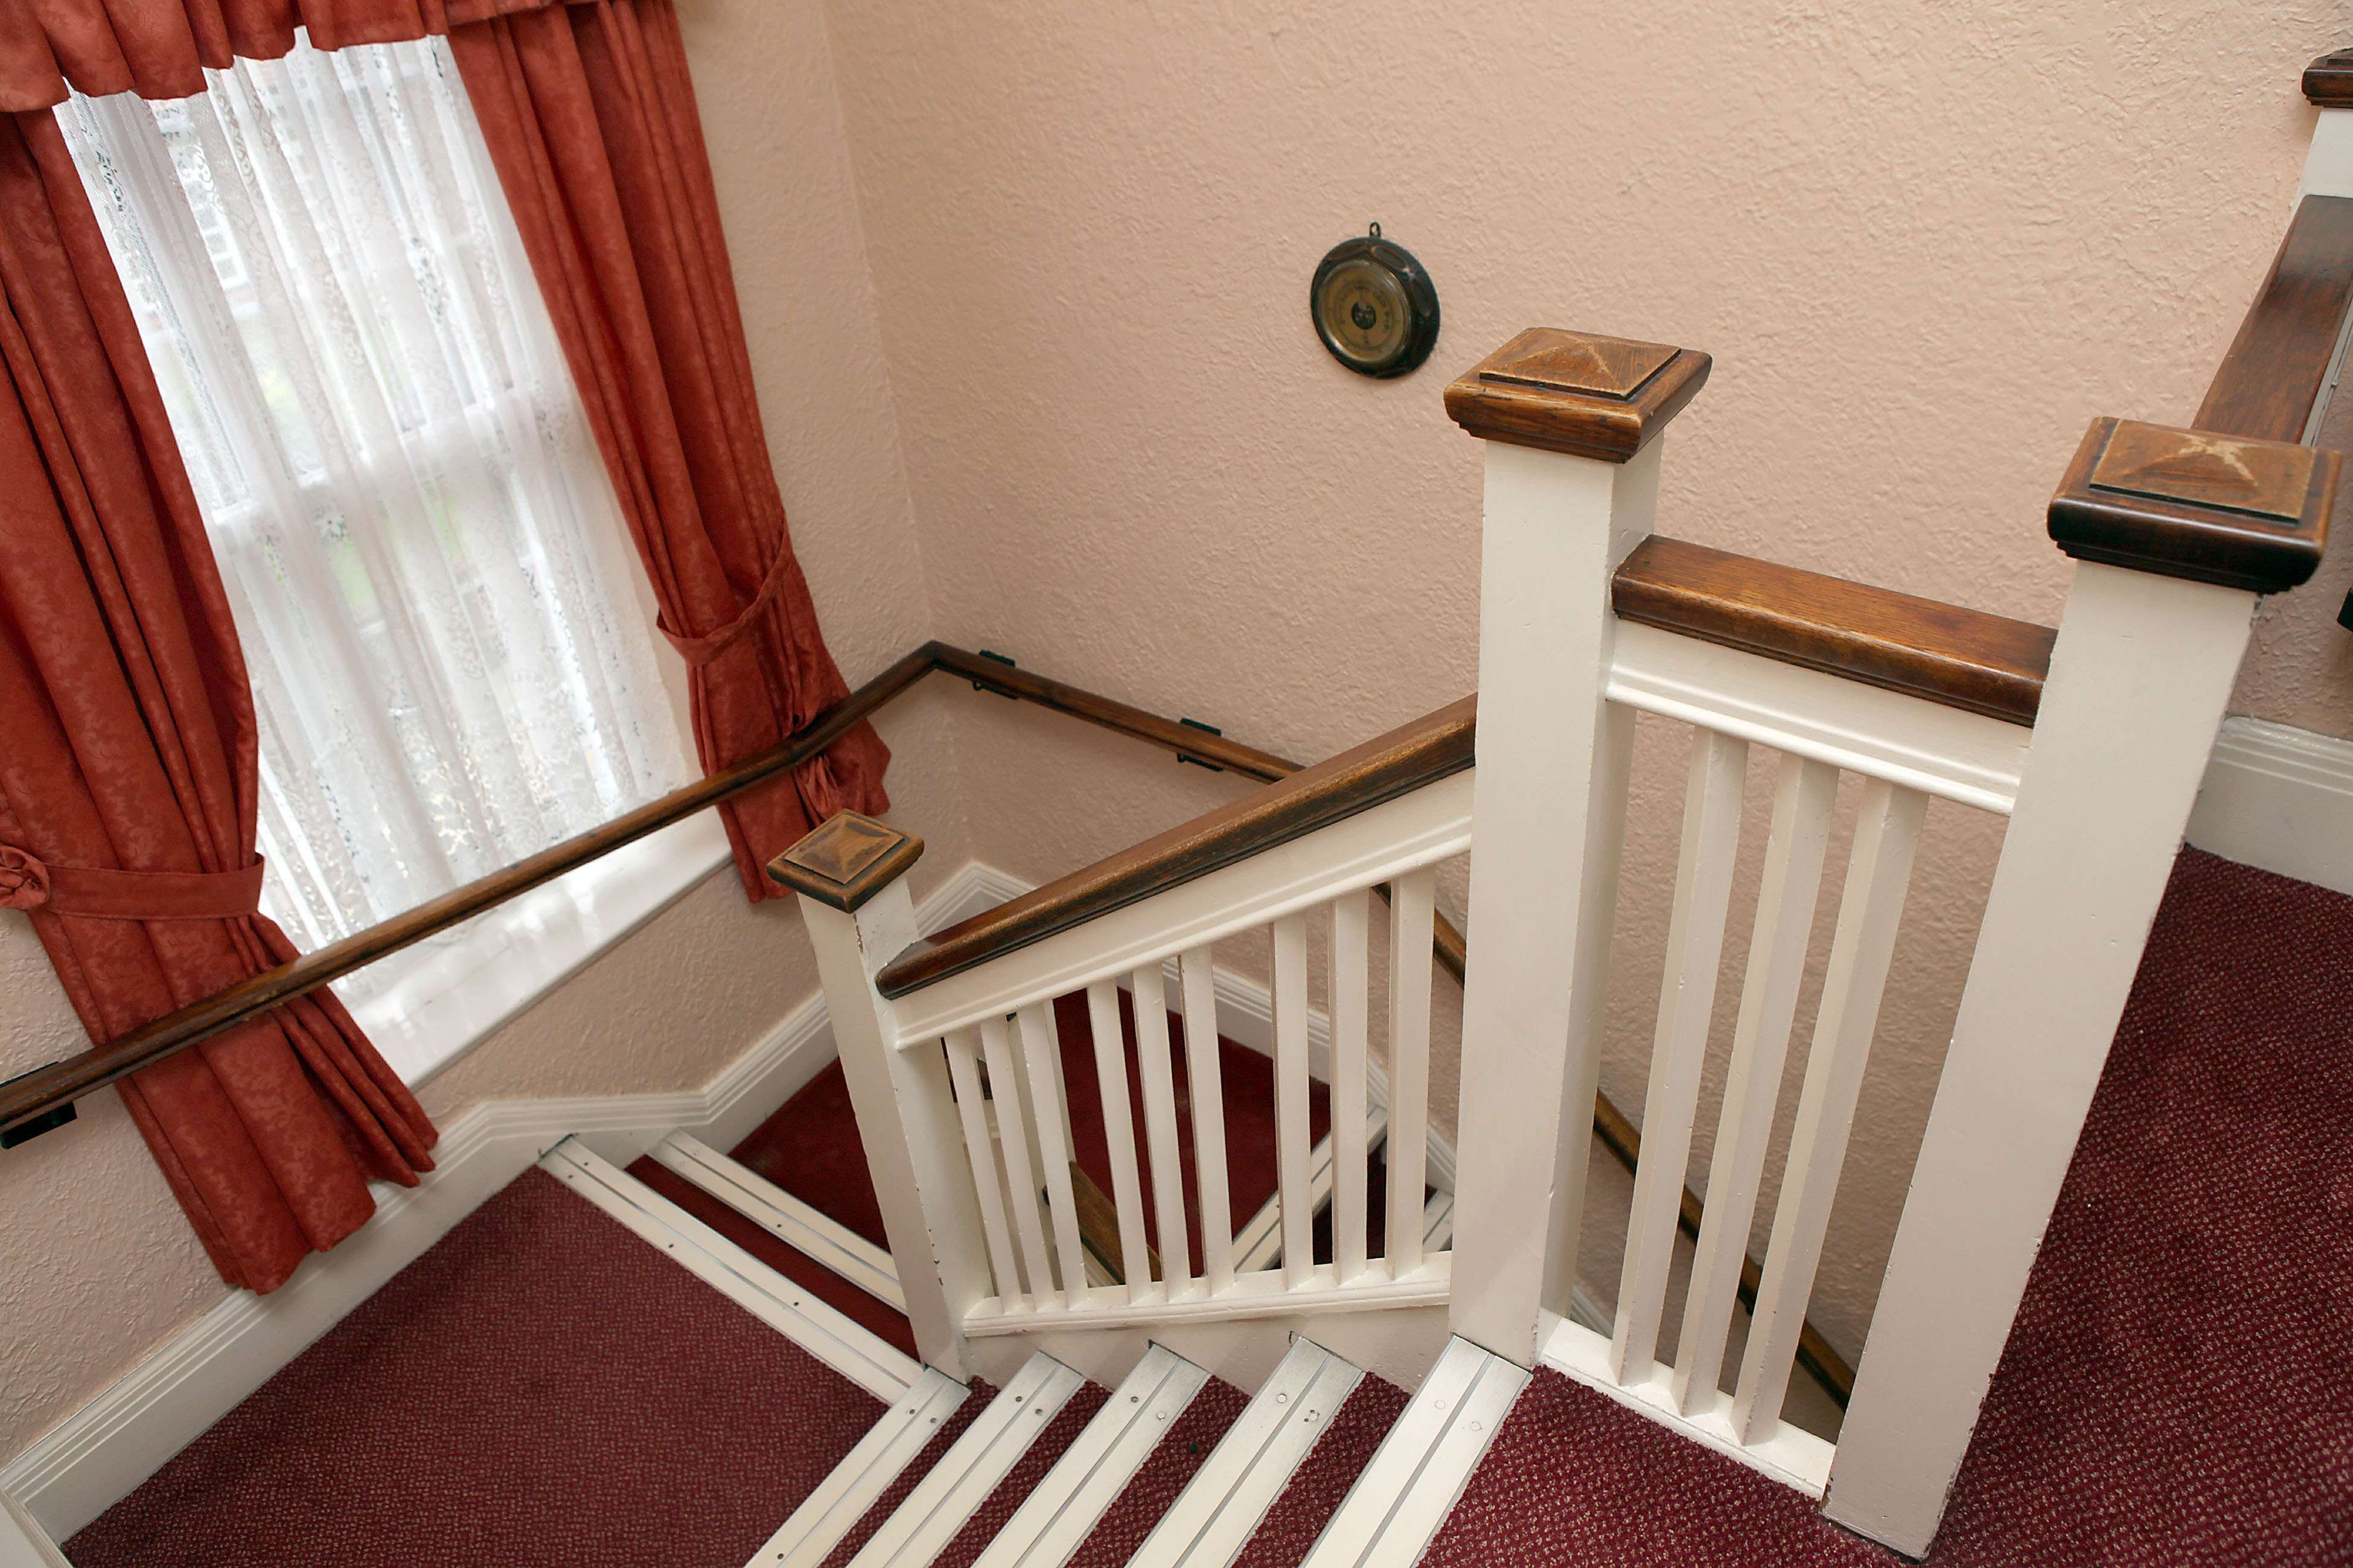 Stairwell adaption with wooden handrails at Tithebarn Residential Home, Great Crosby.